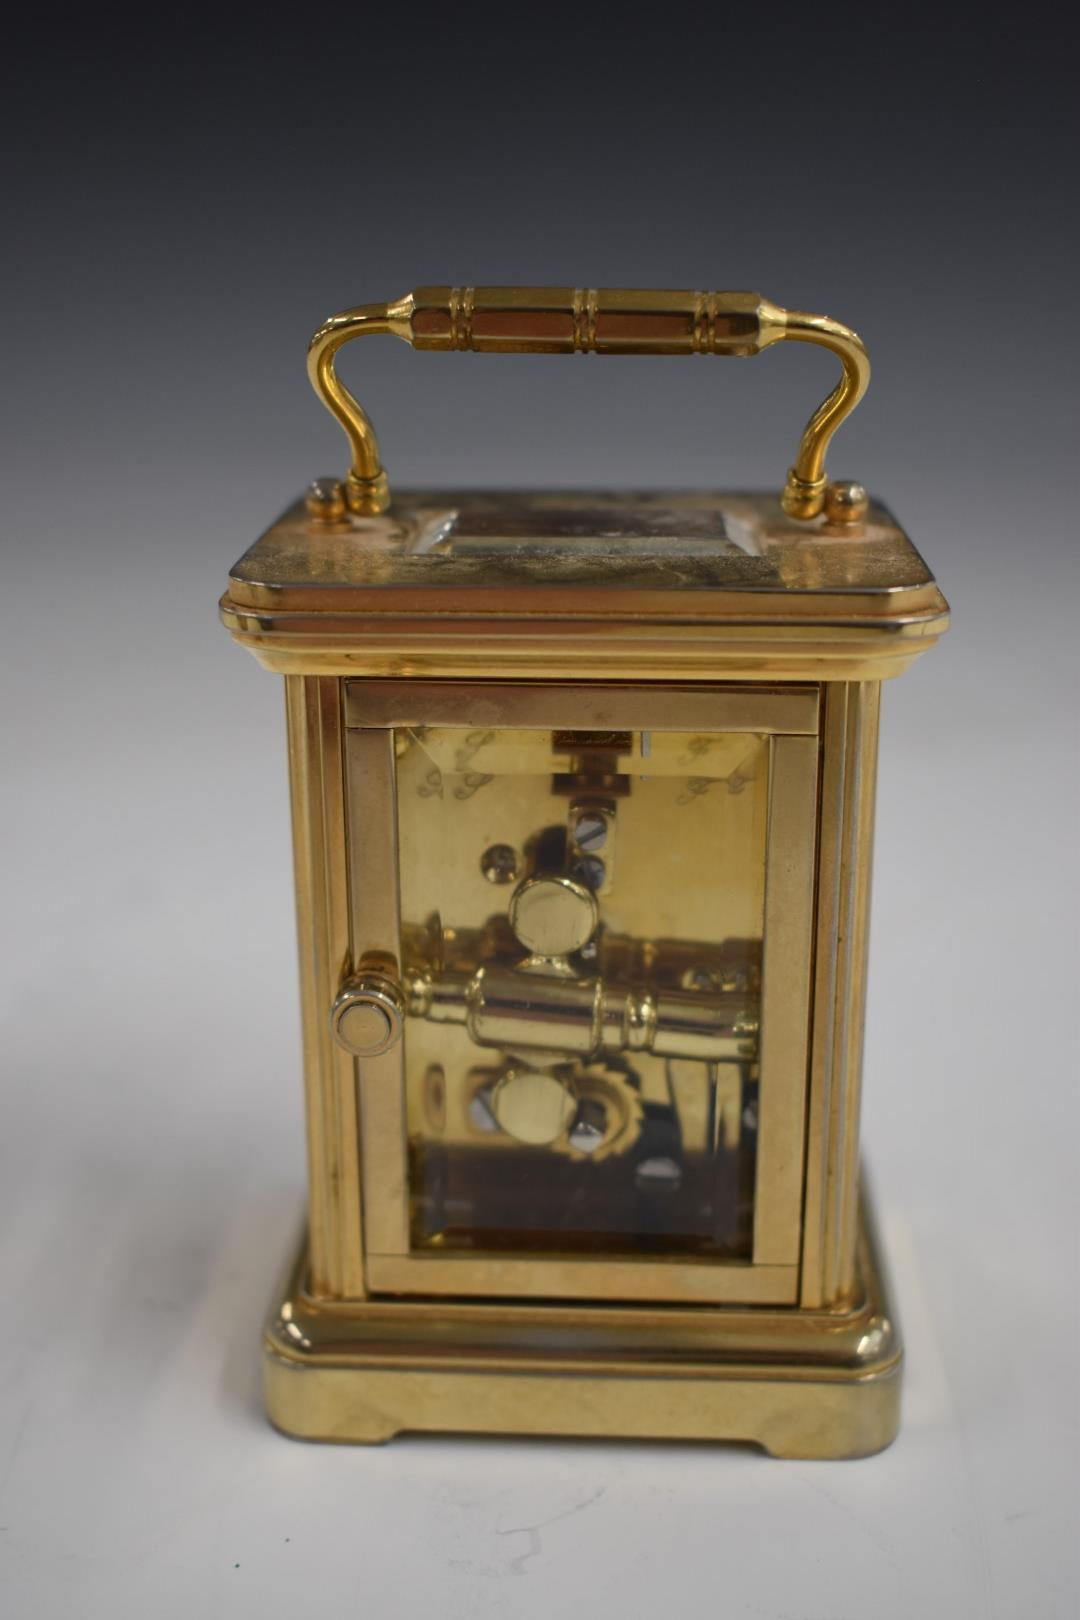 Angelus miniature brass carriage clock with enamelled Roman dial and Breguet style hands, 7.5cm - Image 4 of 5